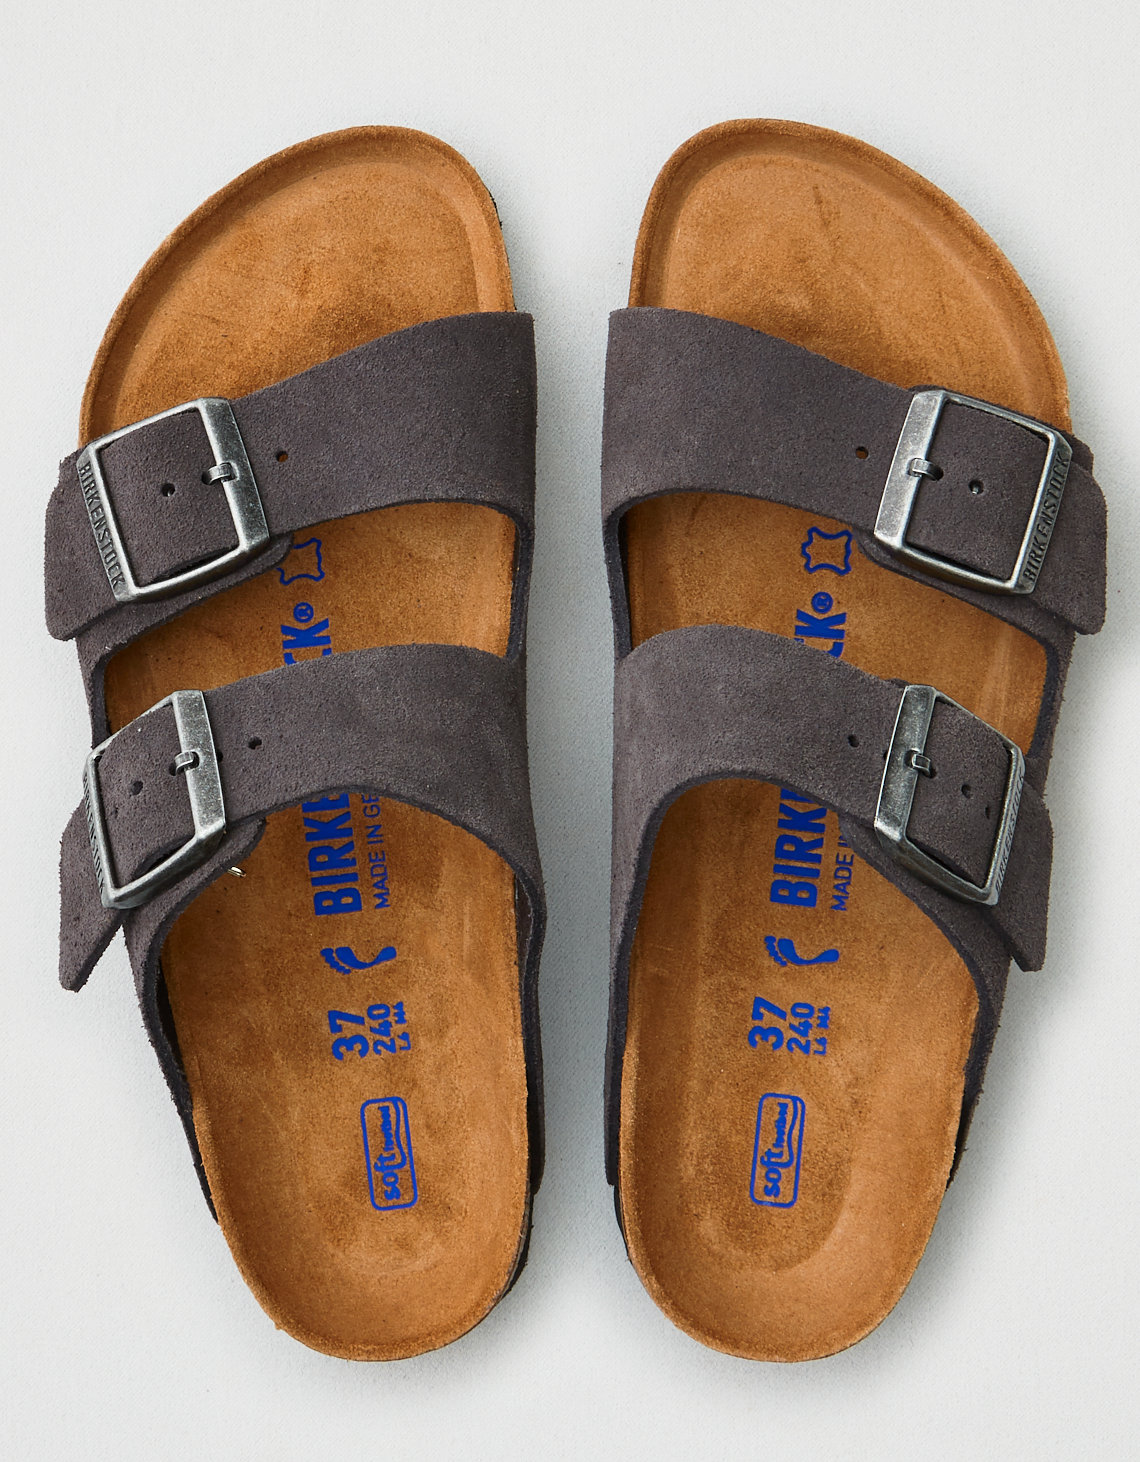 56116e3024 Birkenstock Arizona Soft Footbed Sandals